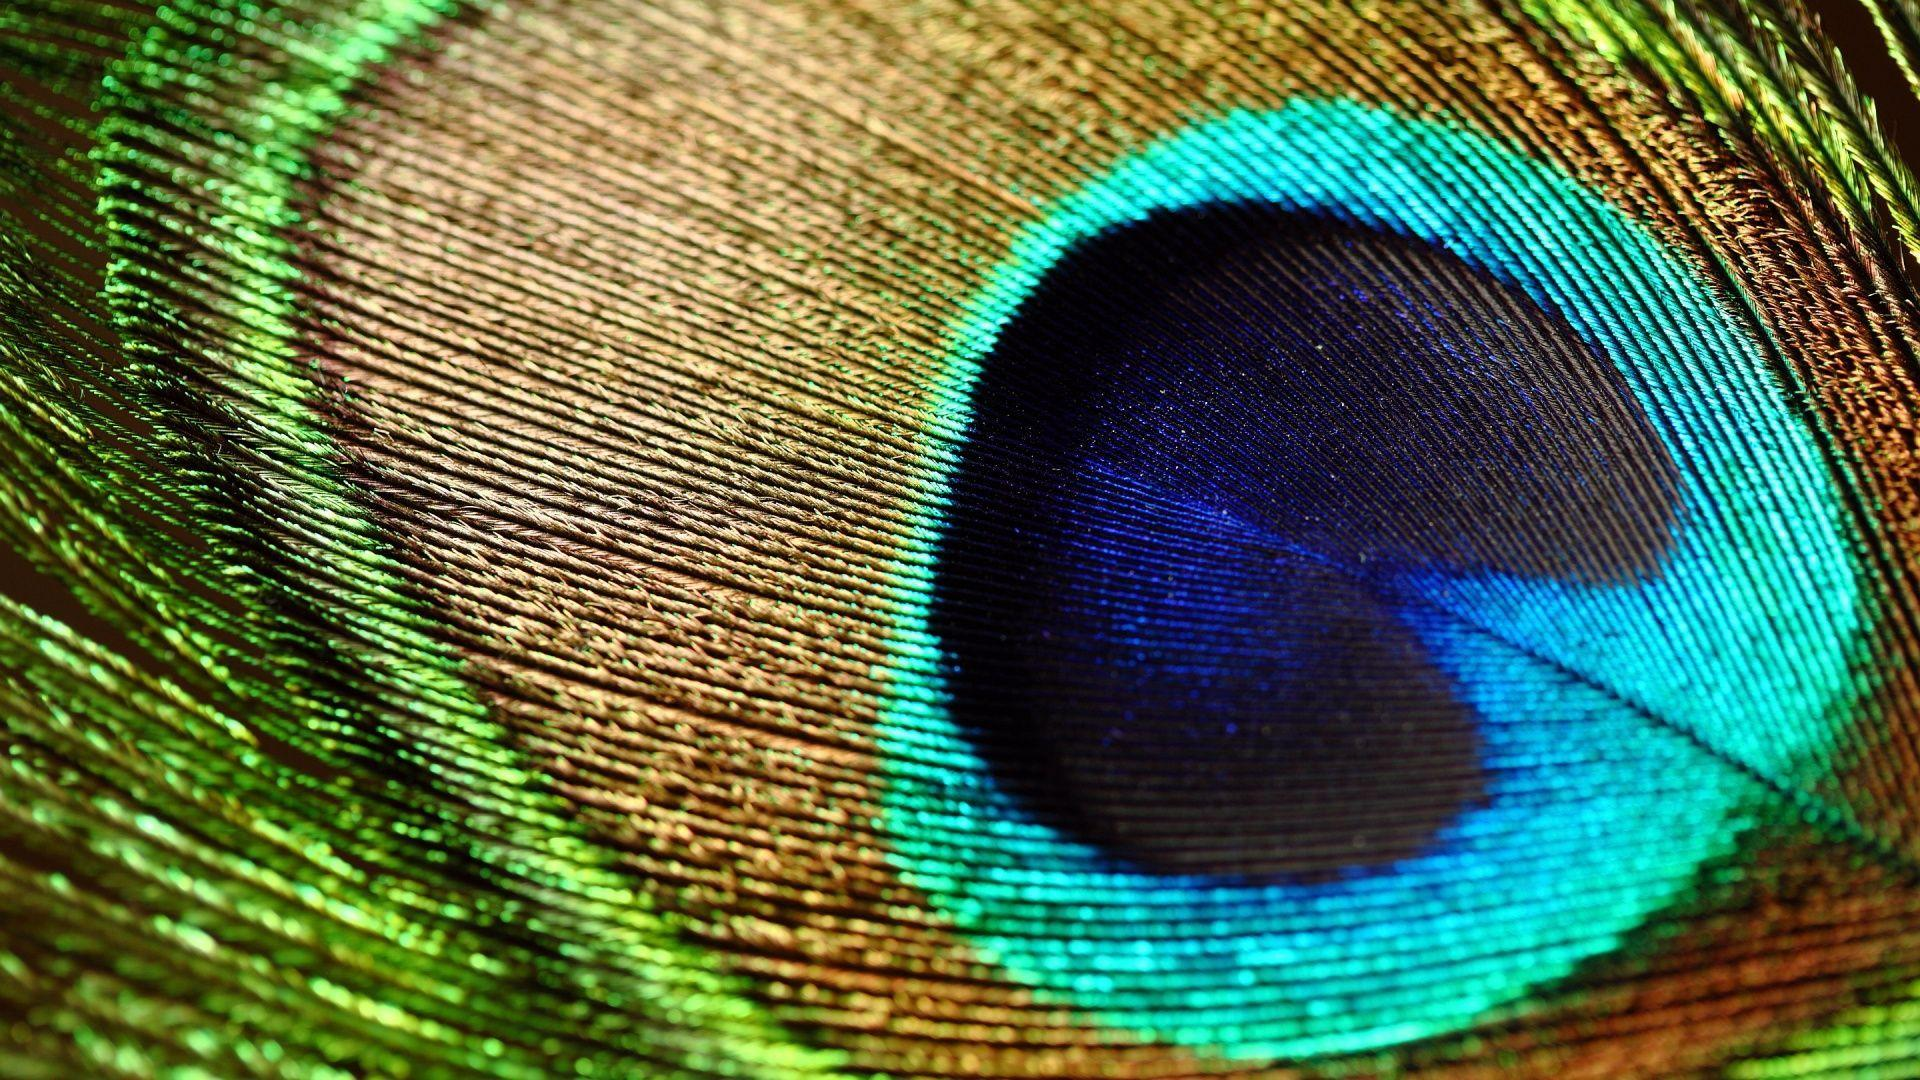 Peacock Feather Wallpaper Hd High Resolution Images Samsung